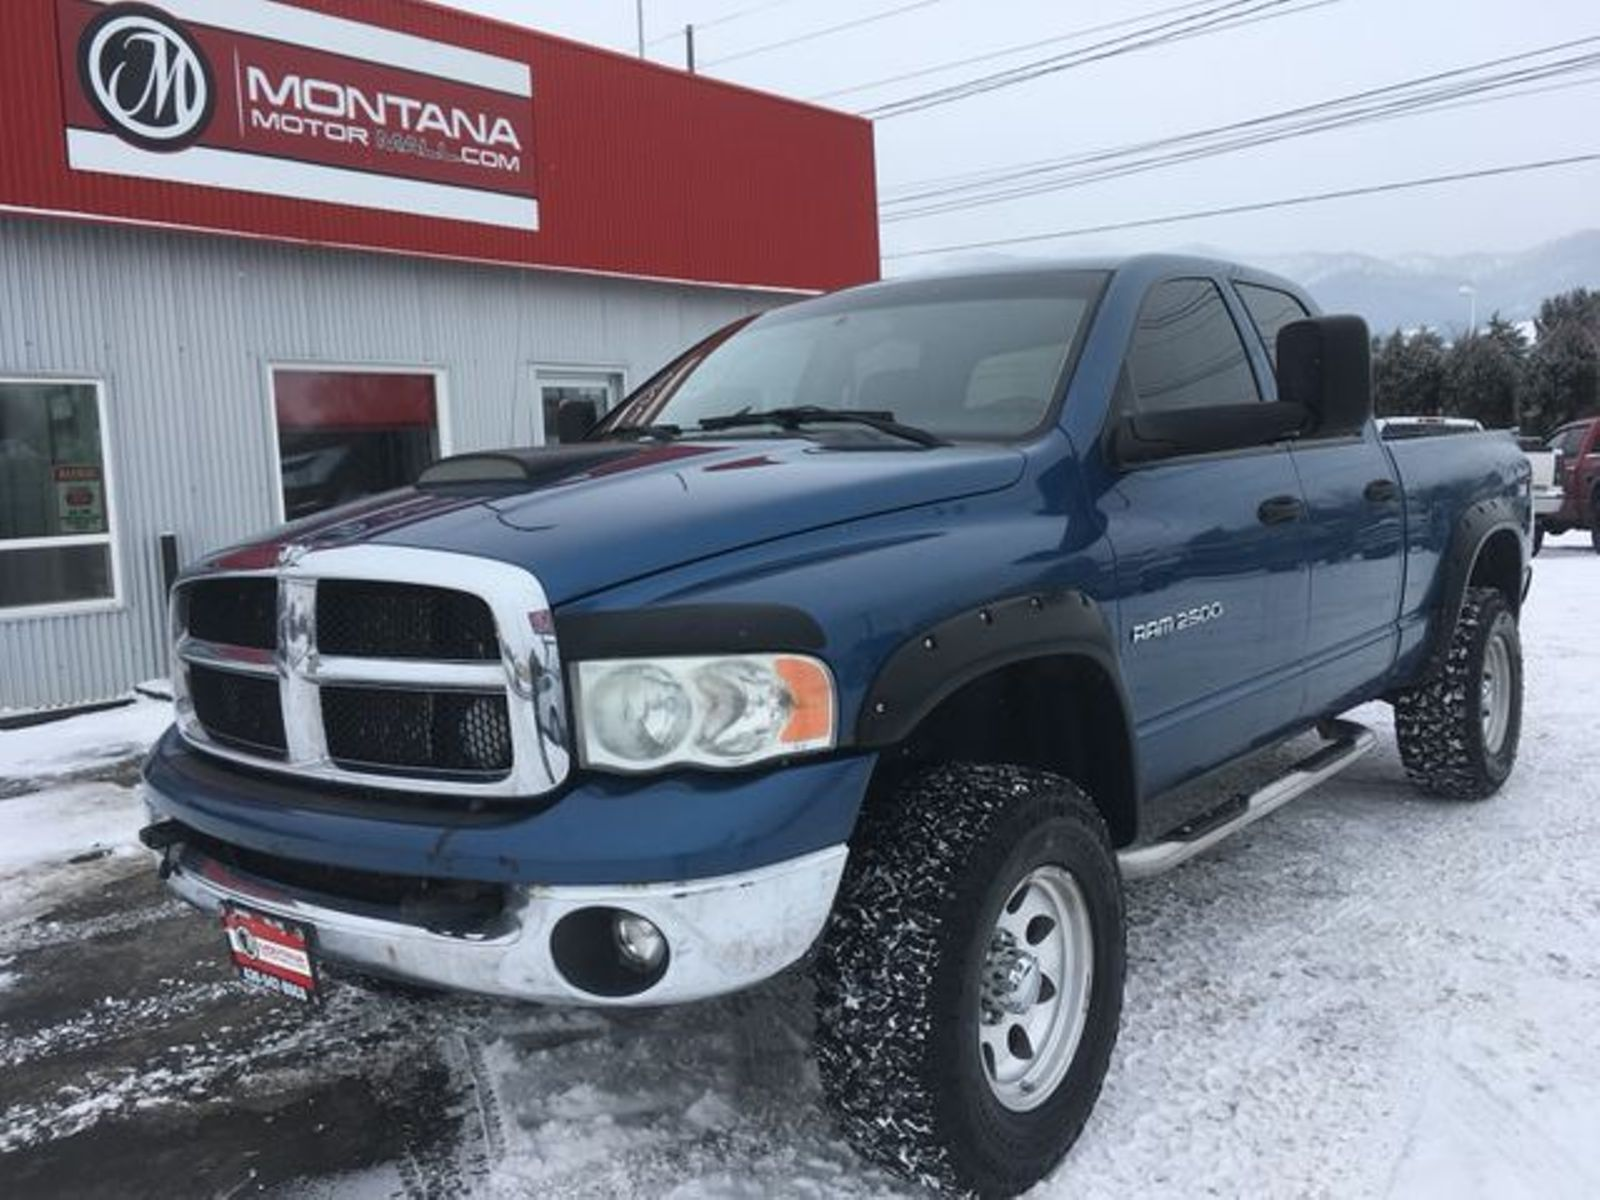 medium resolution of 2003 dodge ram 2500 slt city montana montana motor mall in montana